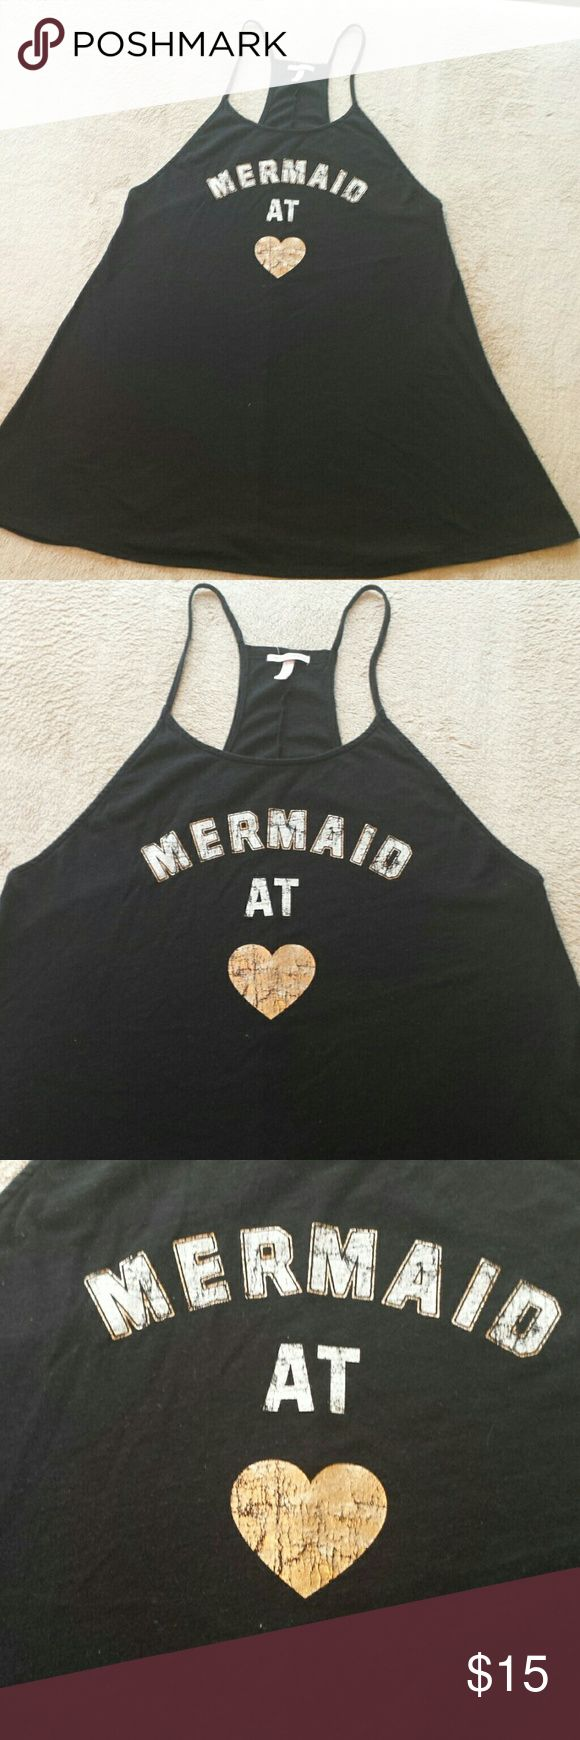 V.S. Mermaid At Heart Sleep Shirt/Coverup. Large. Black Victoria's Secret racerback sleep/night shirt or swimsuit /beach coverup. I can't remember what it was listed as when I bought it but I wore it as a cover up. The white and gold are a little crinkled. Some of it was like that when it was brand new & some of it's from normal wear. No stains or holes. See pics for approx. measurements. It's a little oversized in my opinion. Size on tag is Large. Victoria's Secret Swim Coverups